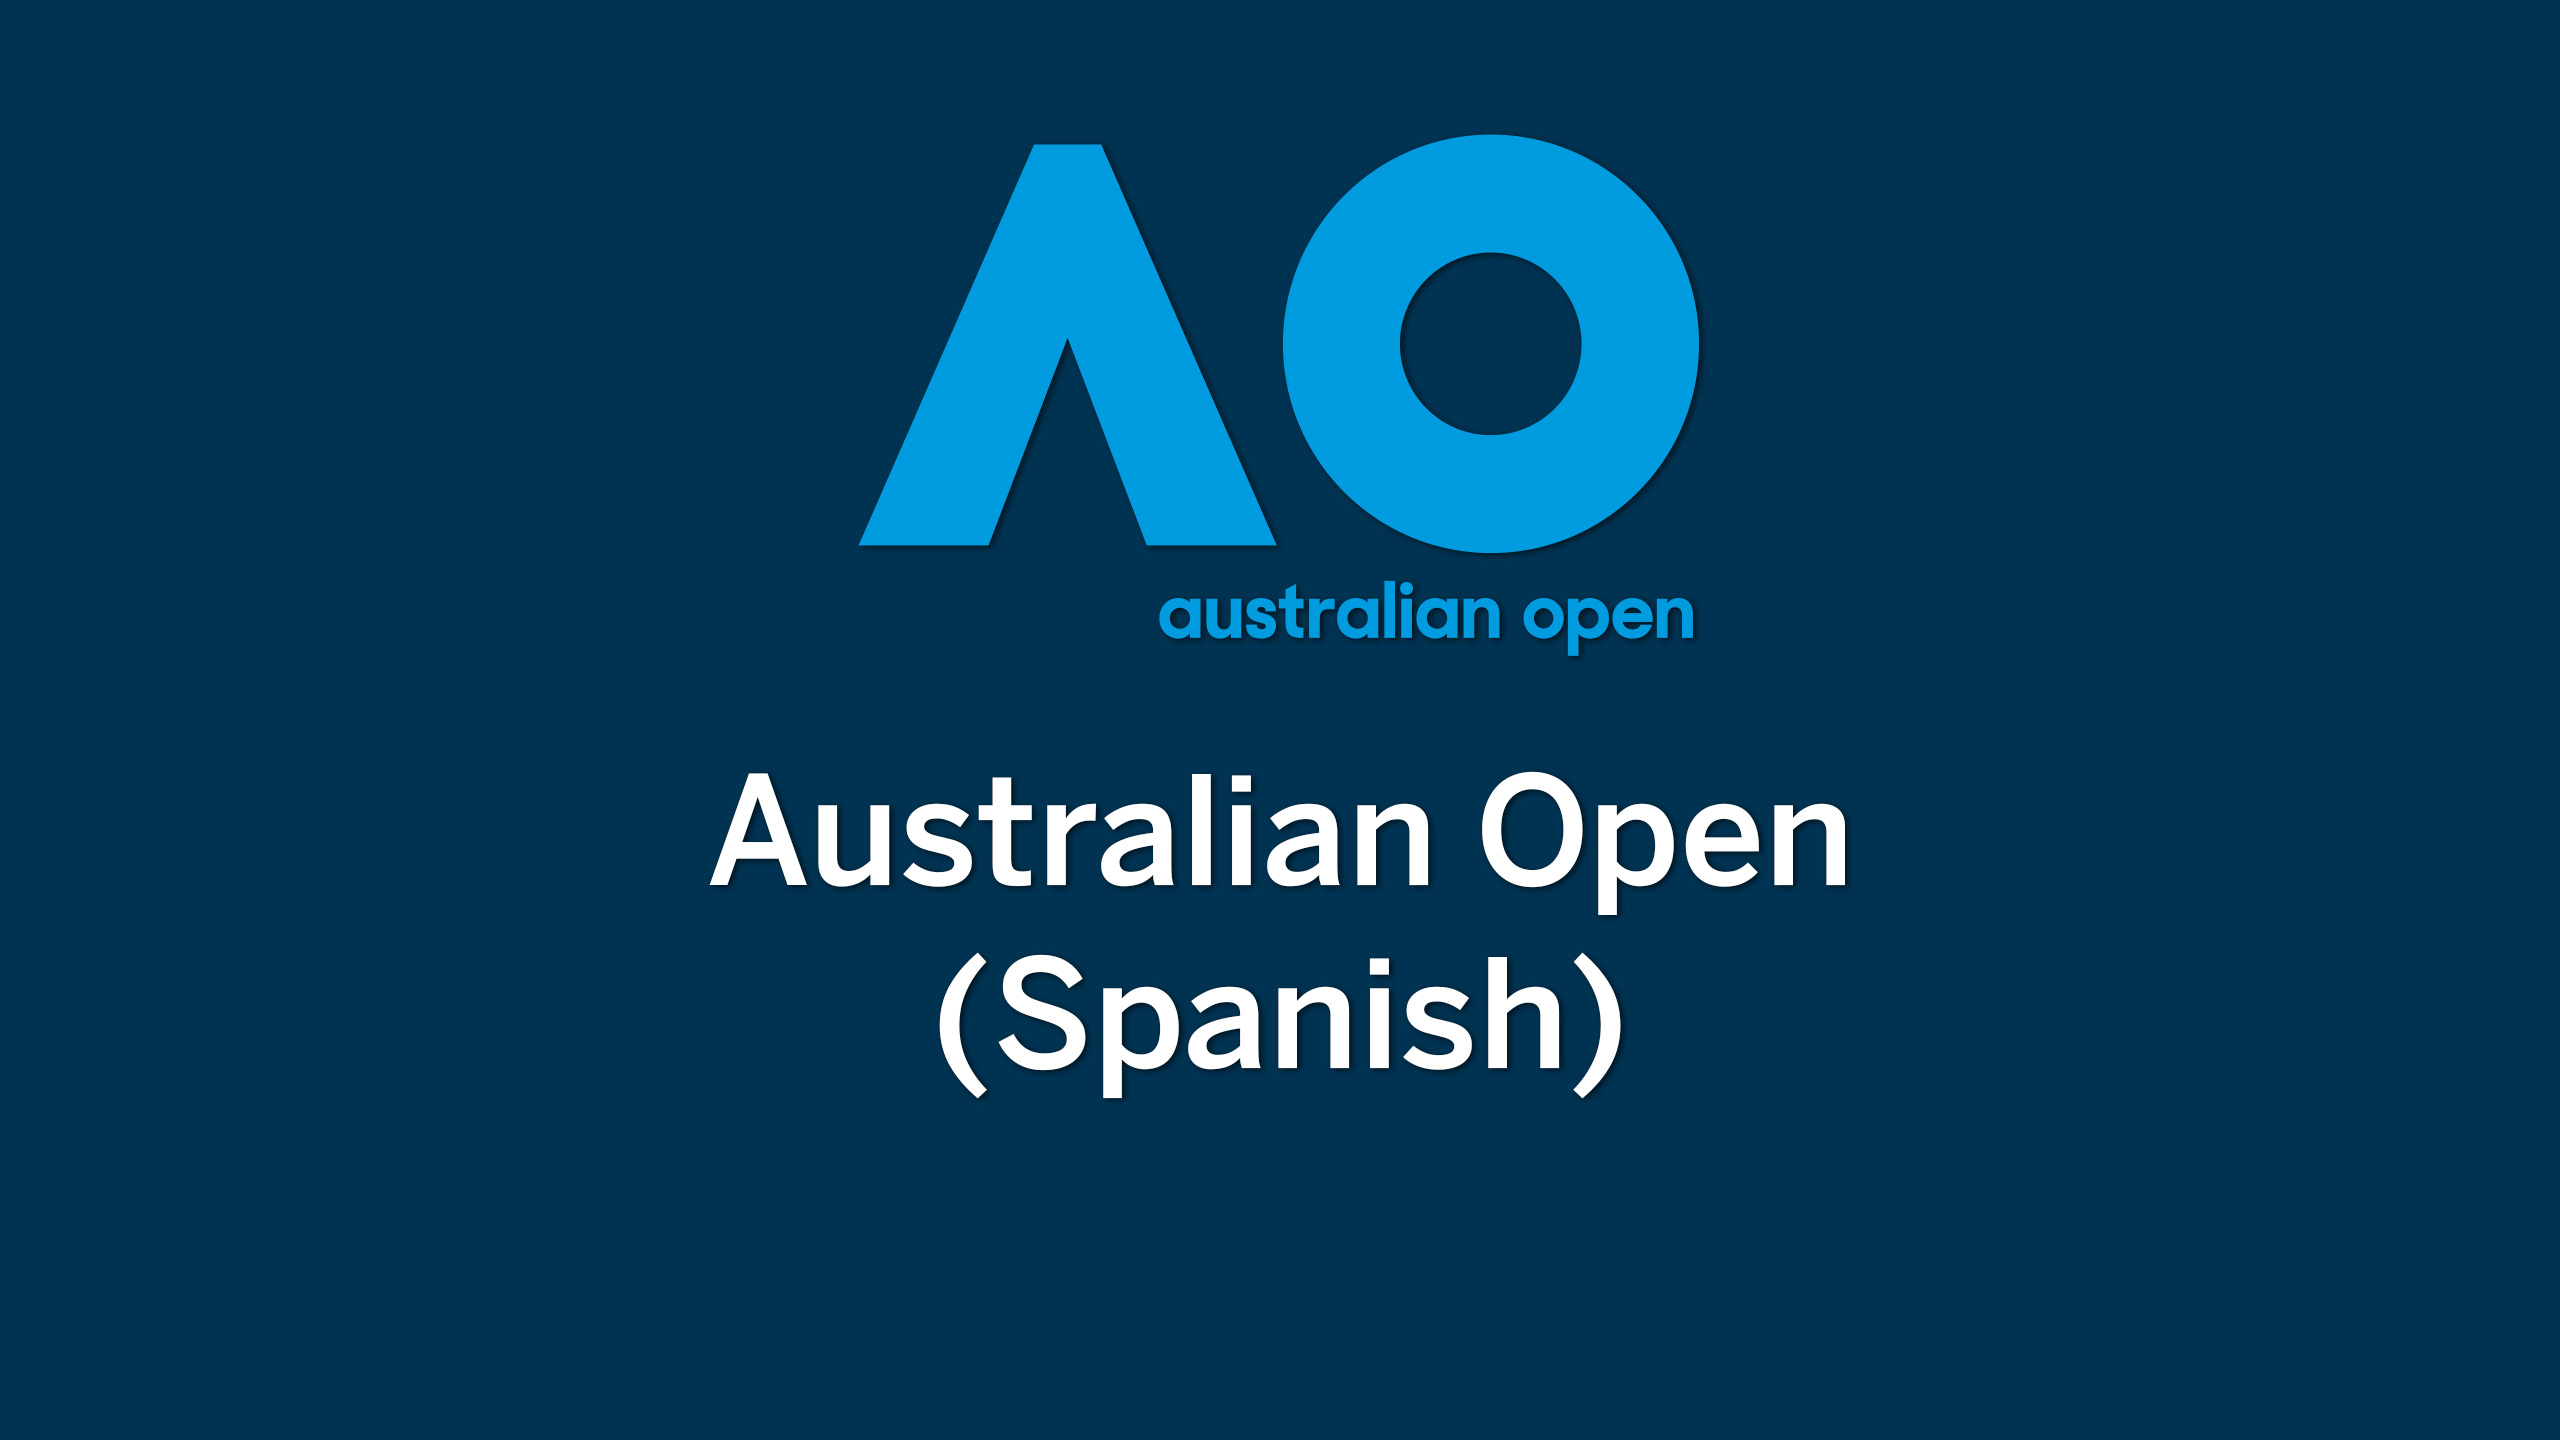 In Spanish - Australian Open Tennis